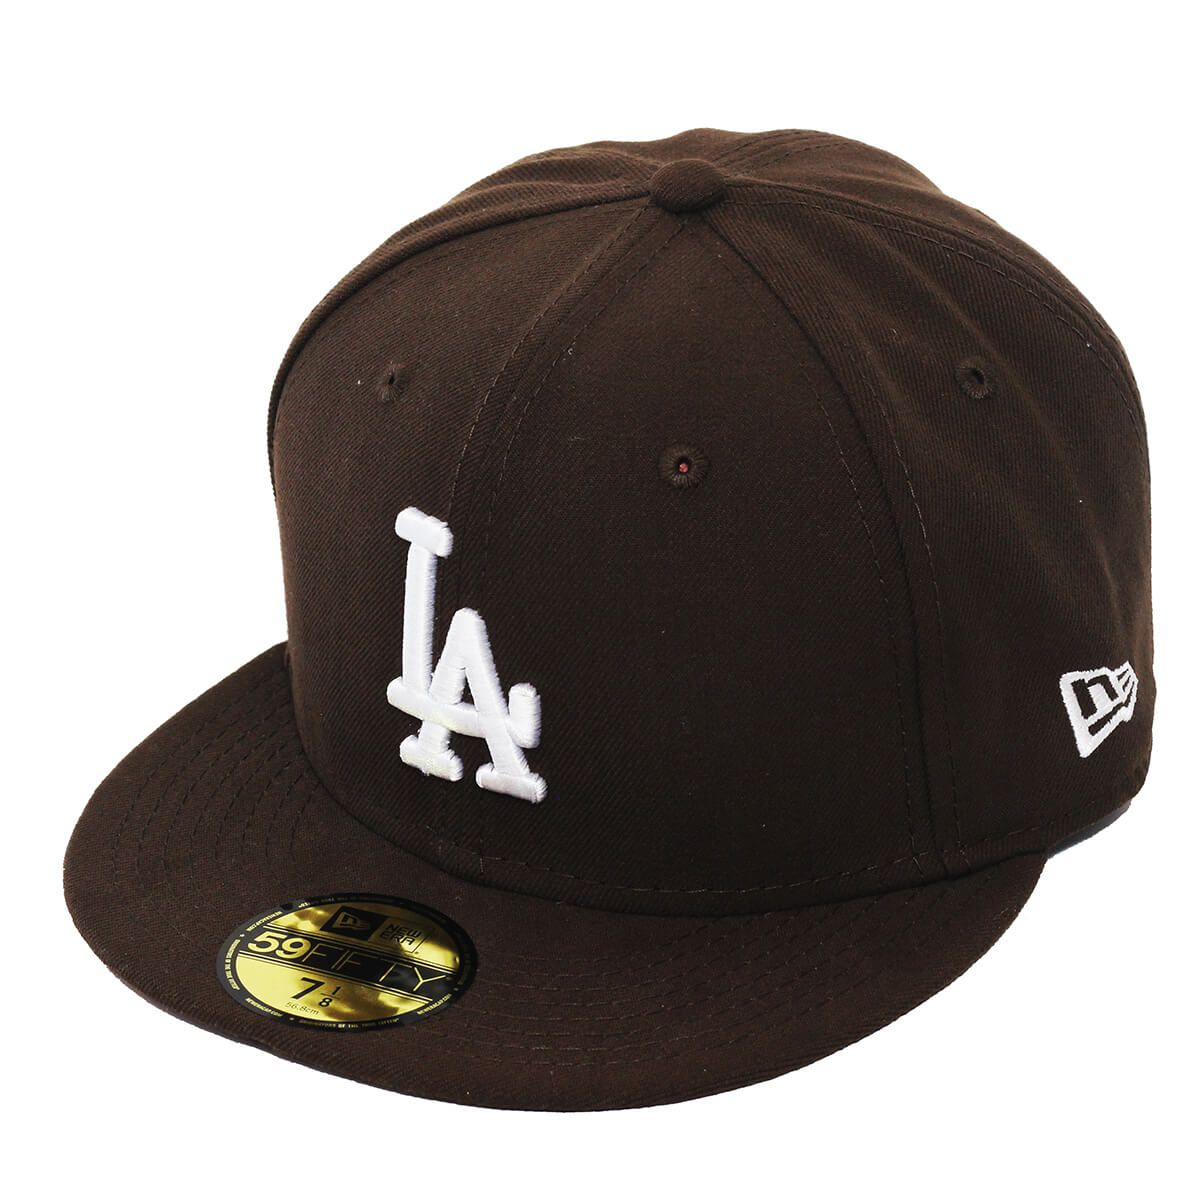 Boné New Era Aba Reta 5950 MLB Los Angeles Basic Colors Marrom